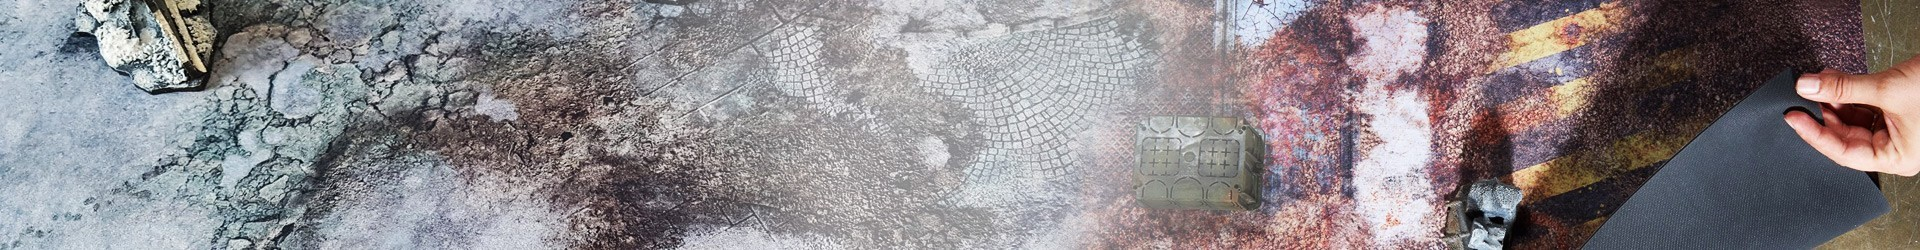 Pwork Wargames - Battle mats and terrain for wargaming